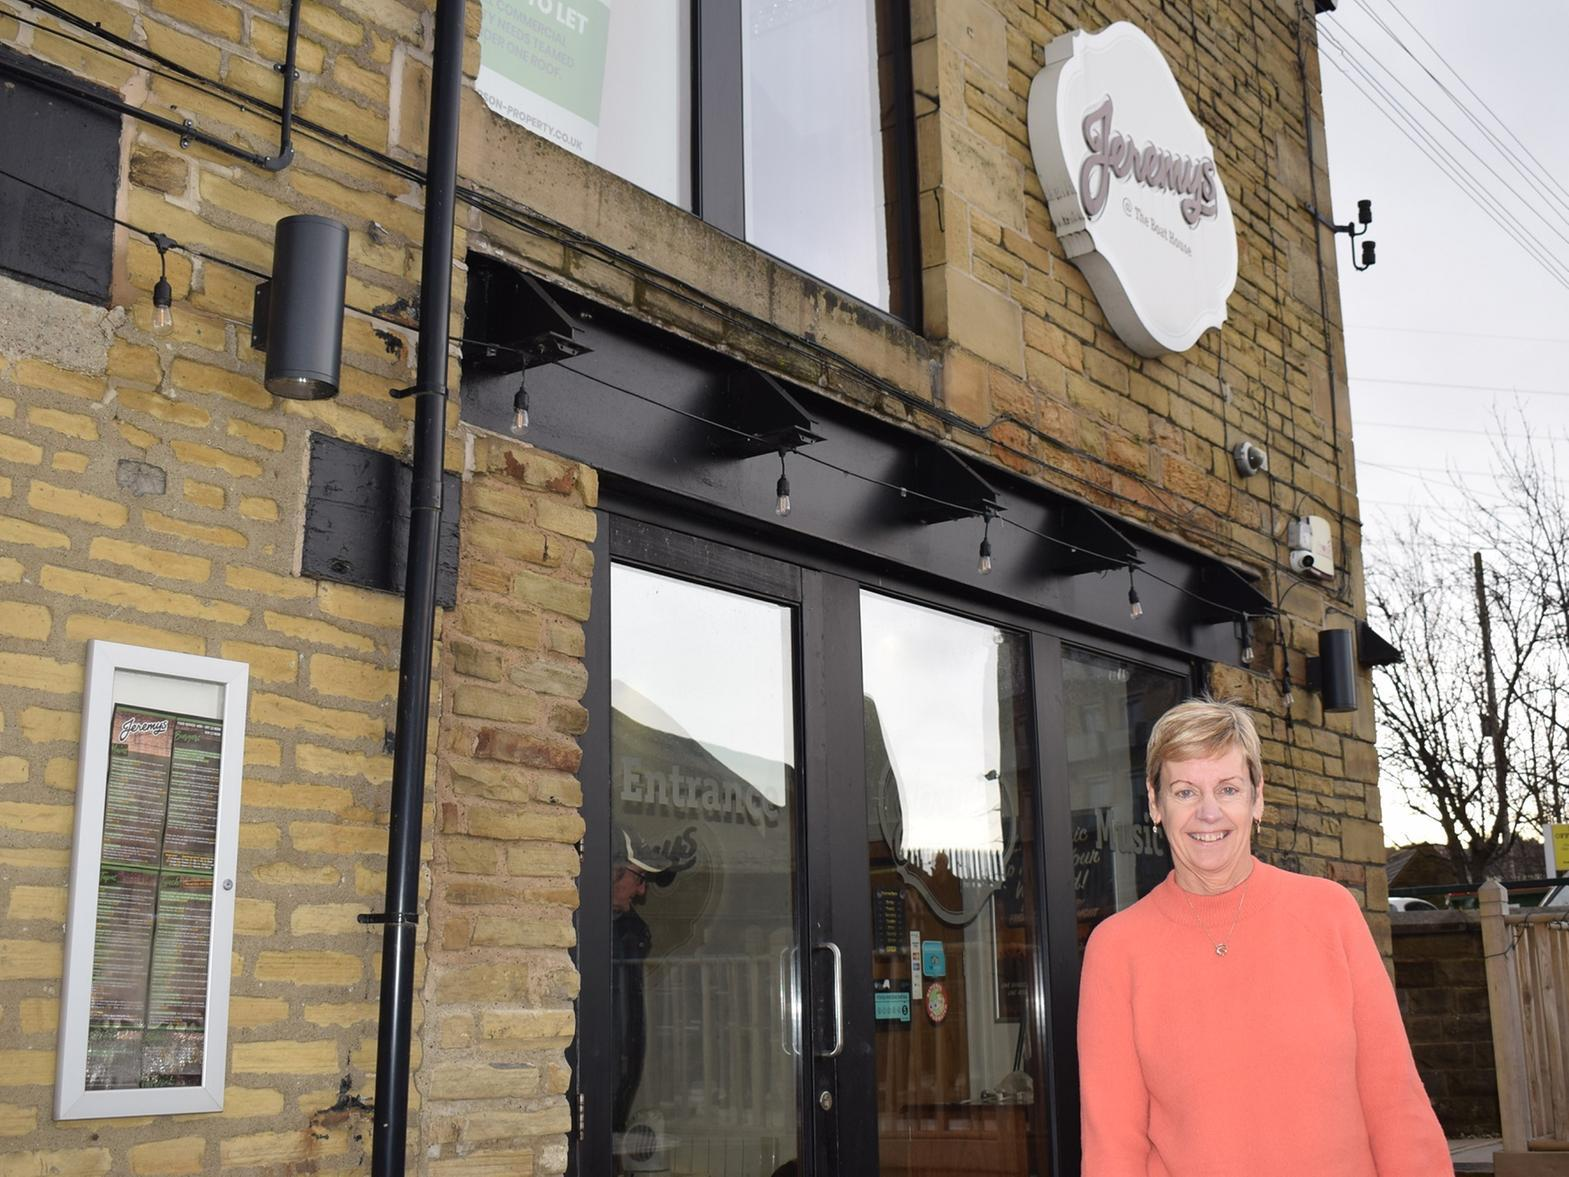 Brighouse businesses blame drains for 'frightening' floods